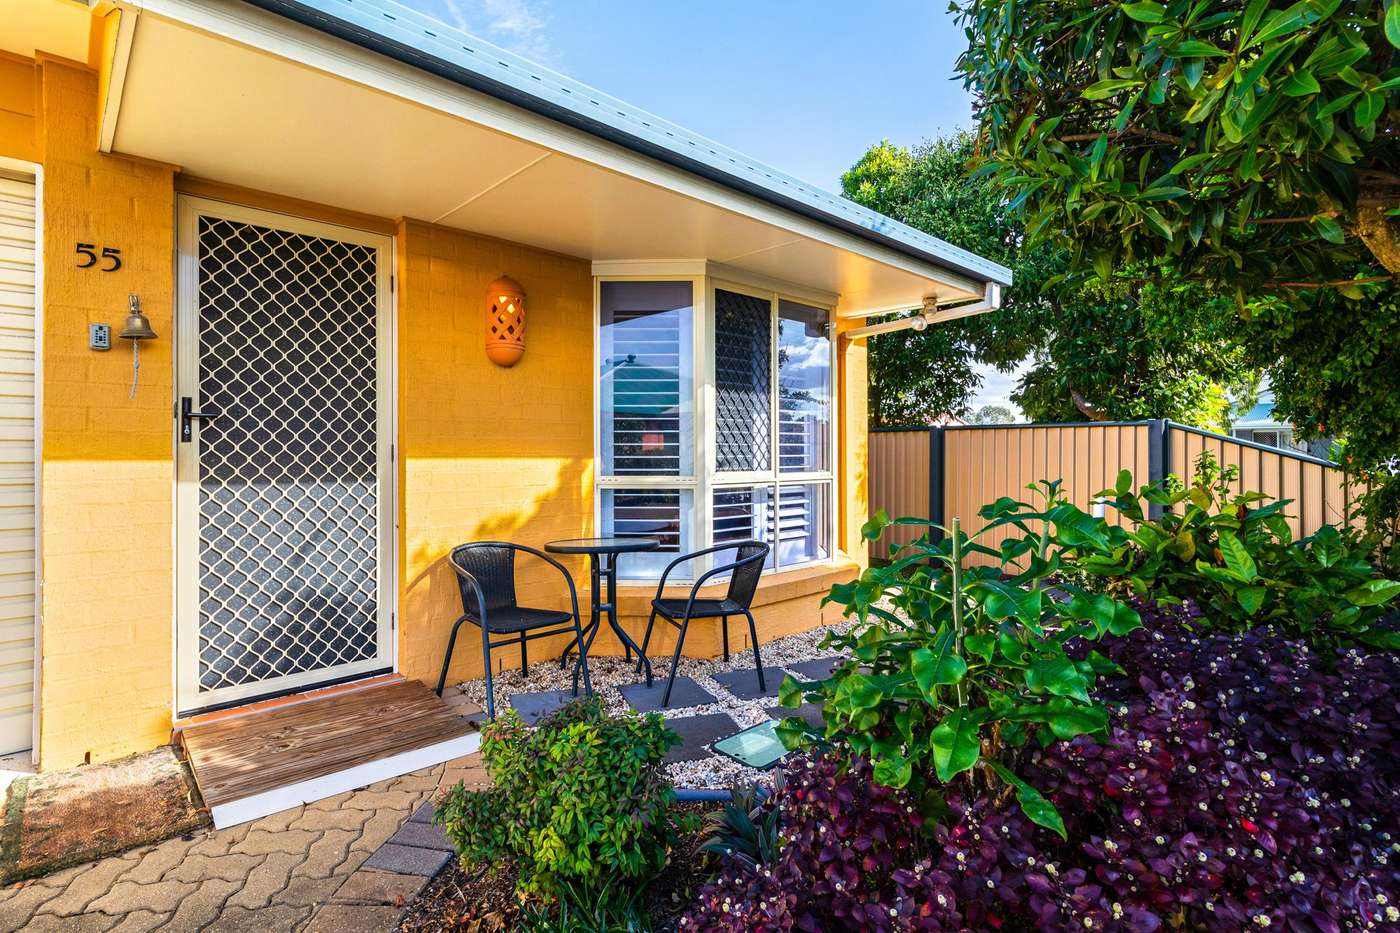 Main view of Homely unit listing, 55/40 Lakeside Crescent, Currimundi, QLD 4551